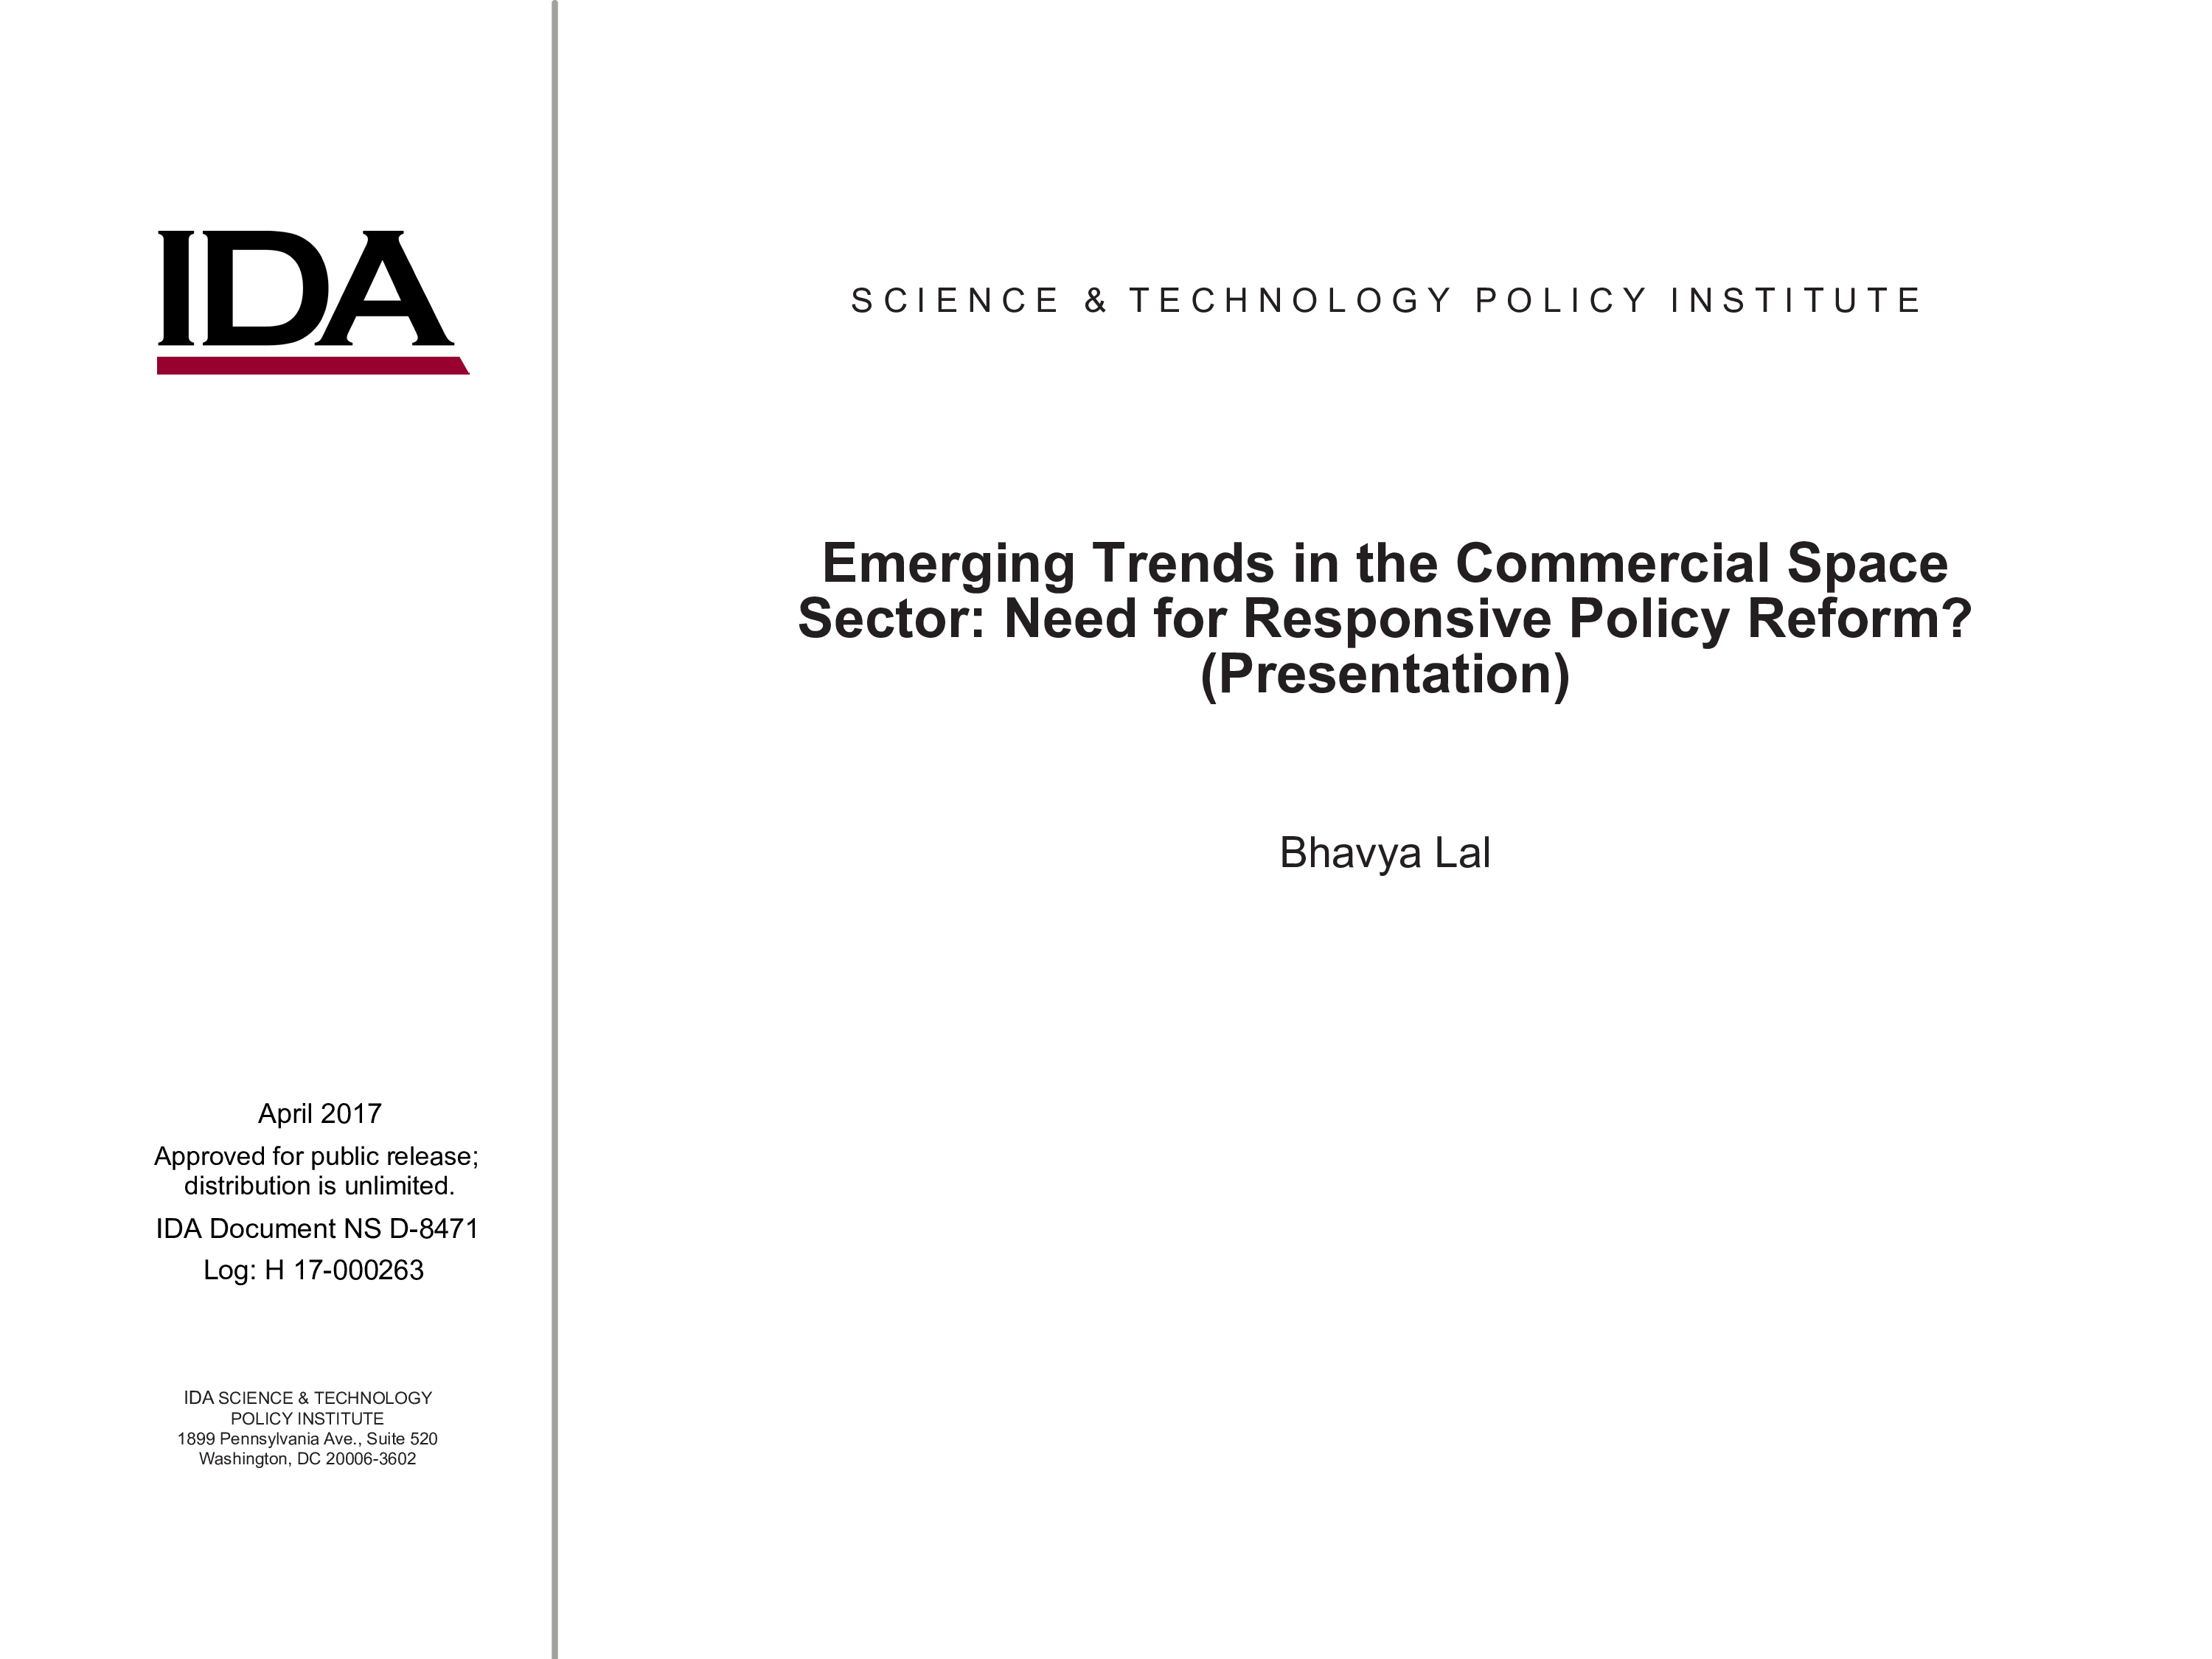 Emerging Trends in the Commercial Space Sector: Need for Responsive Policy Reform?